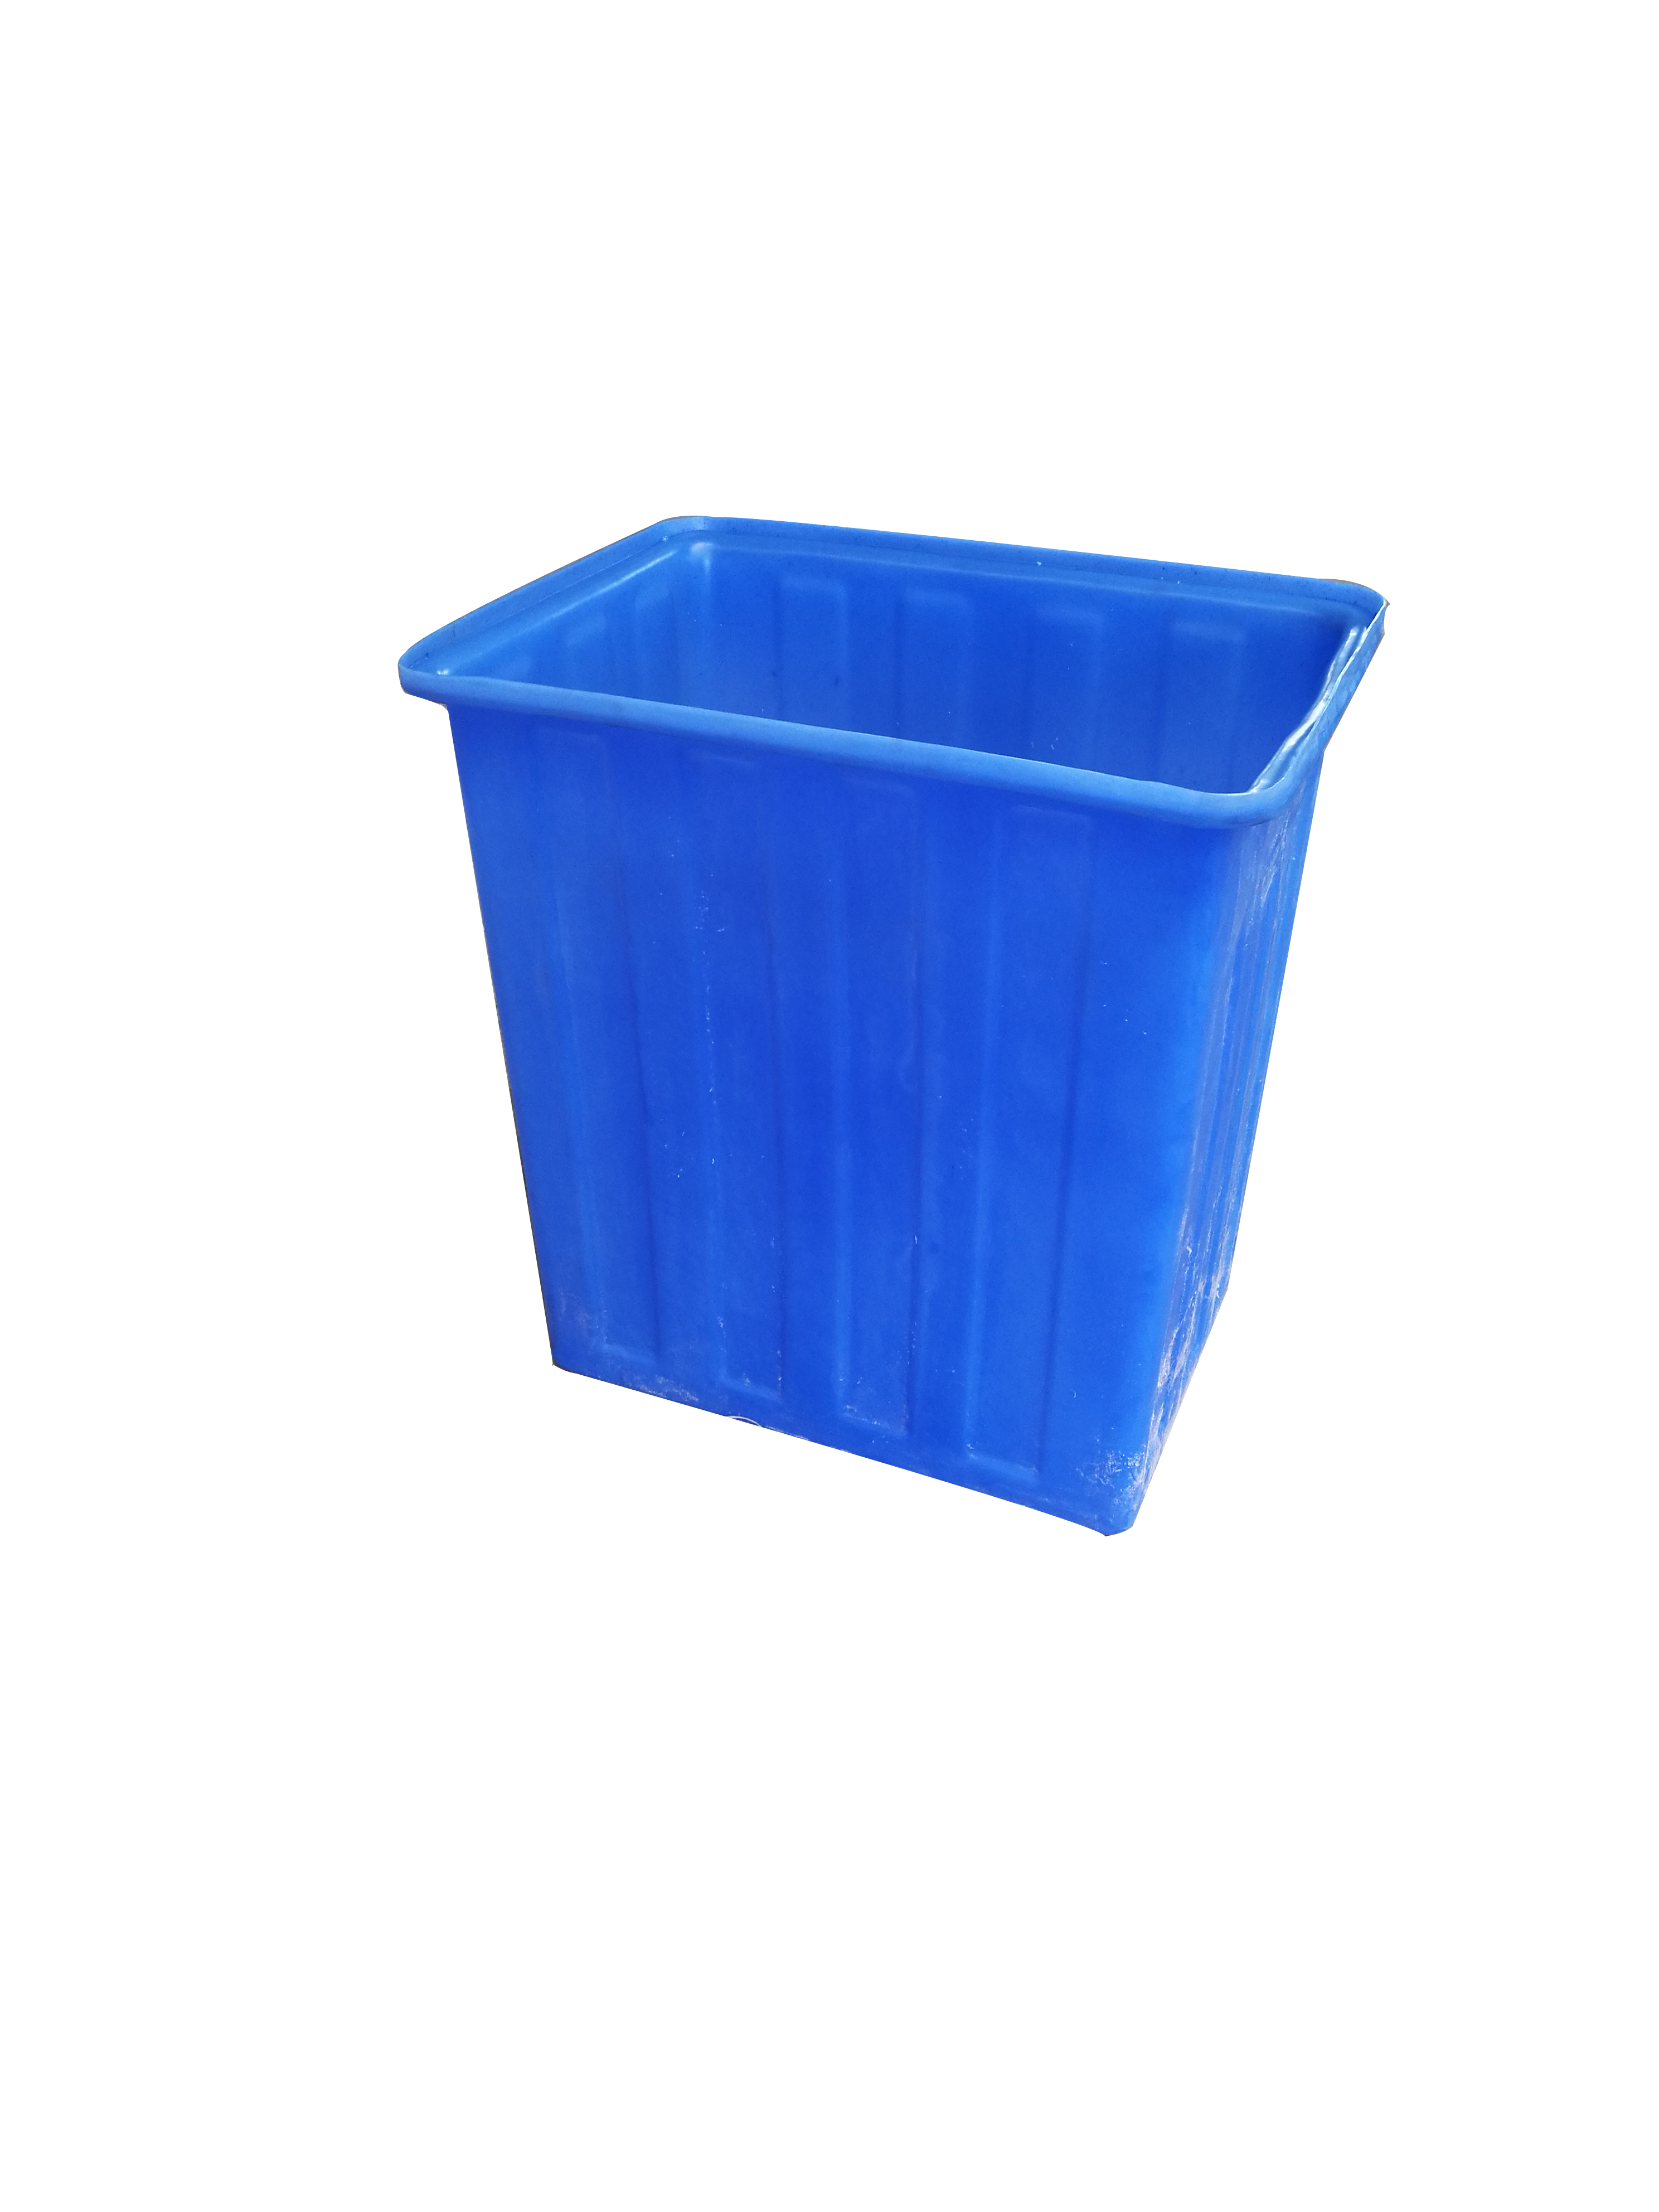 160 Litres rectangular Open Top Water Tank Square large heavy duty